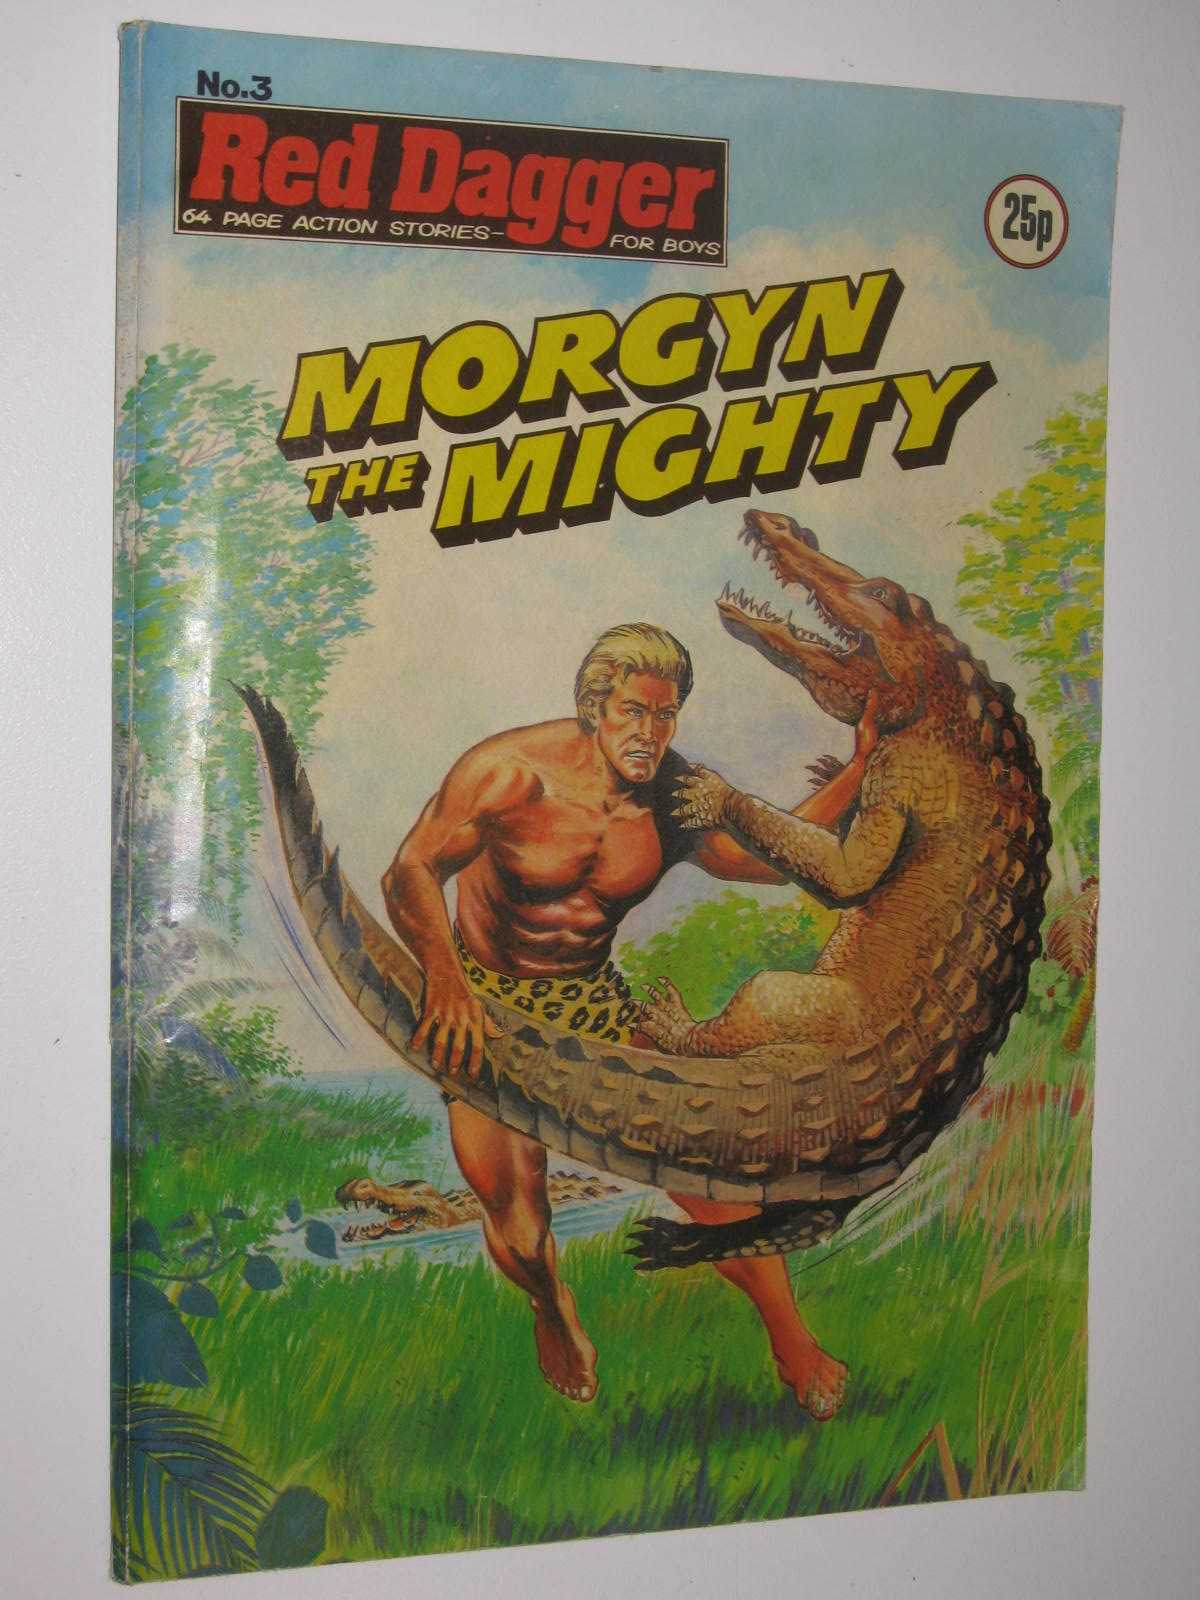 Image for Red Dagger No. 3: Morgyn the Mighty : 64 Page Action Stories for Boys